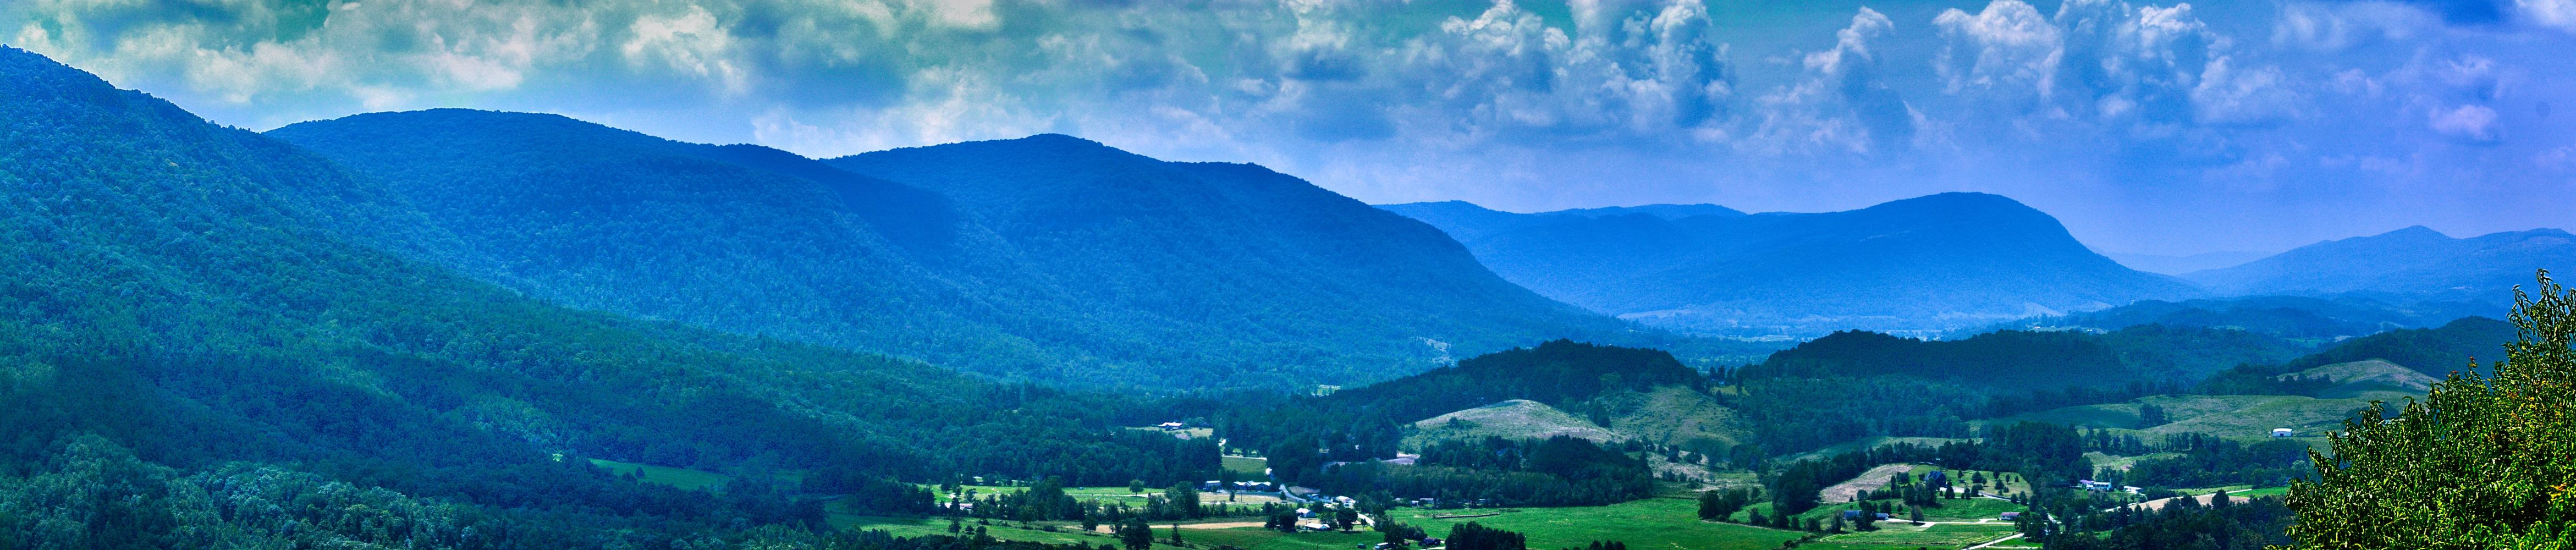 Elevation Big Stone Gap Va : Elevation of wise county va usa maplogs